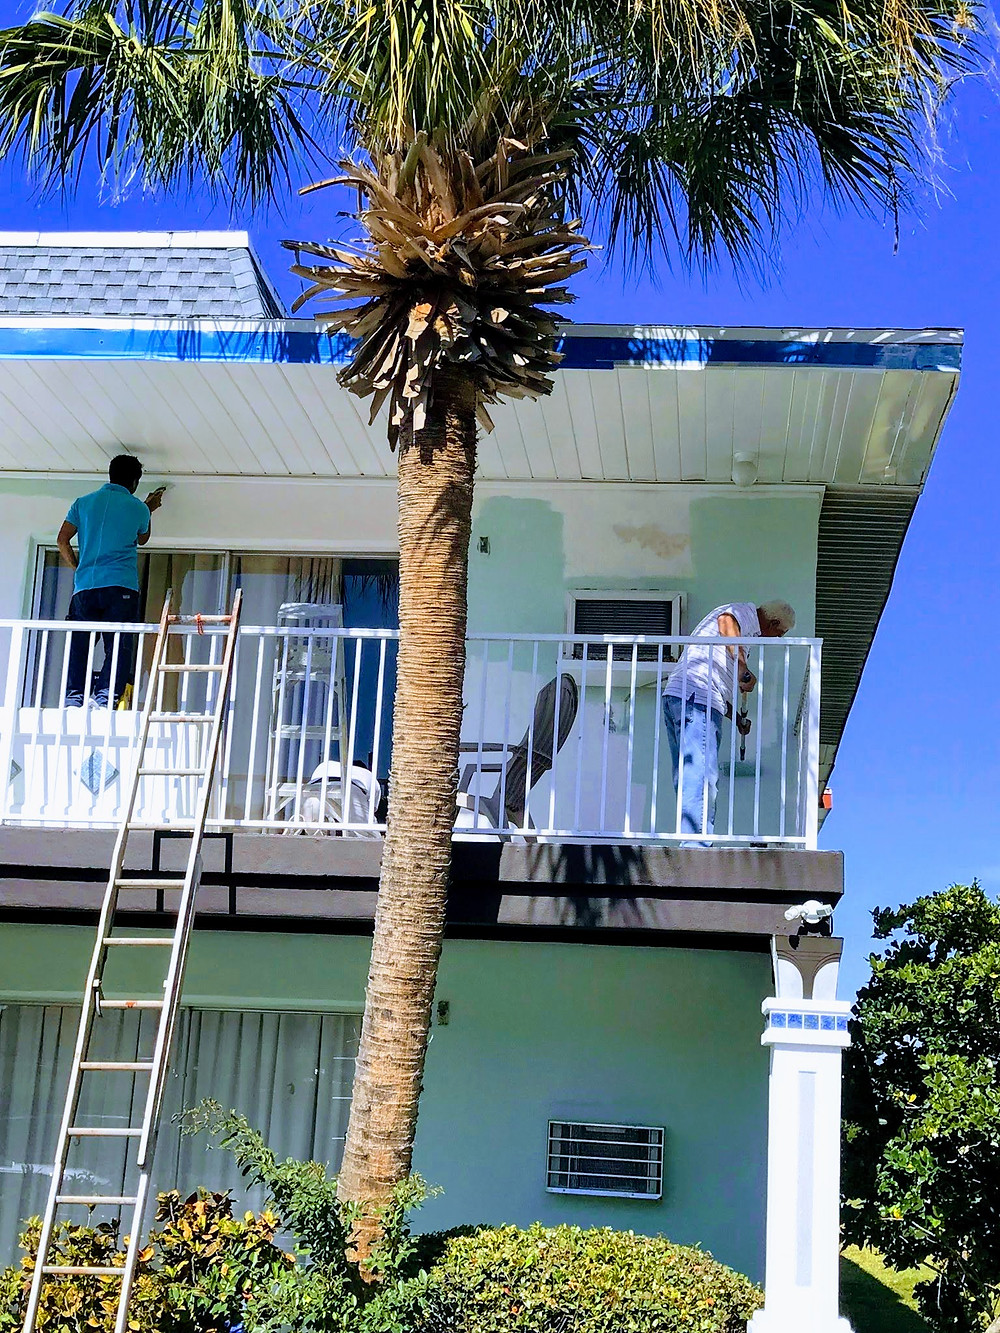 Photo of men painting on balcony